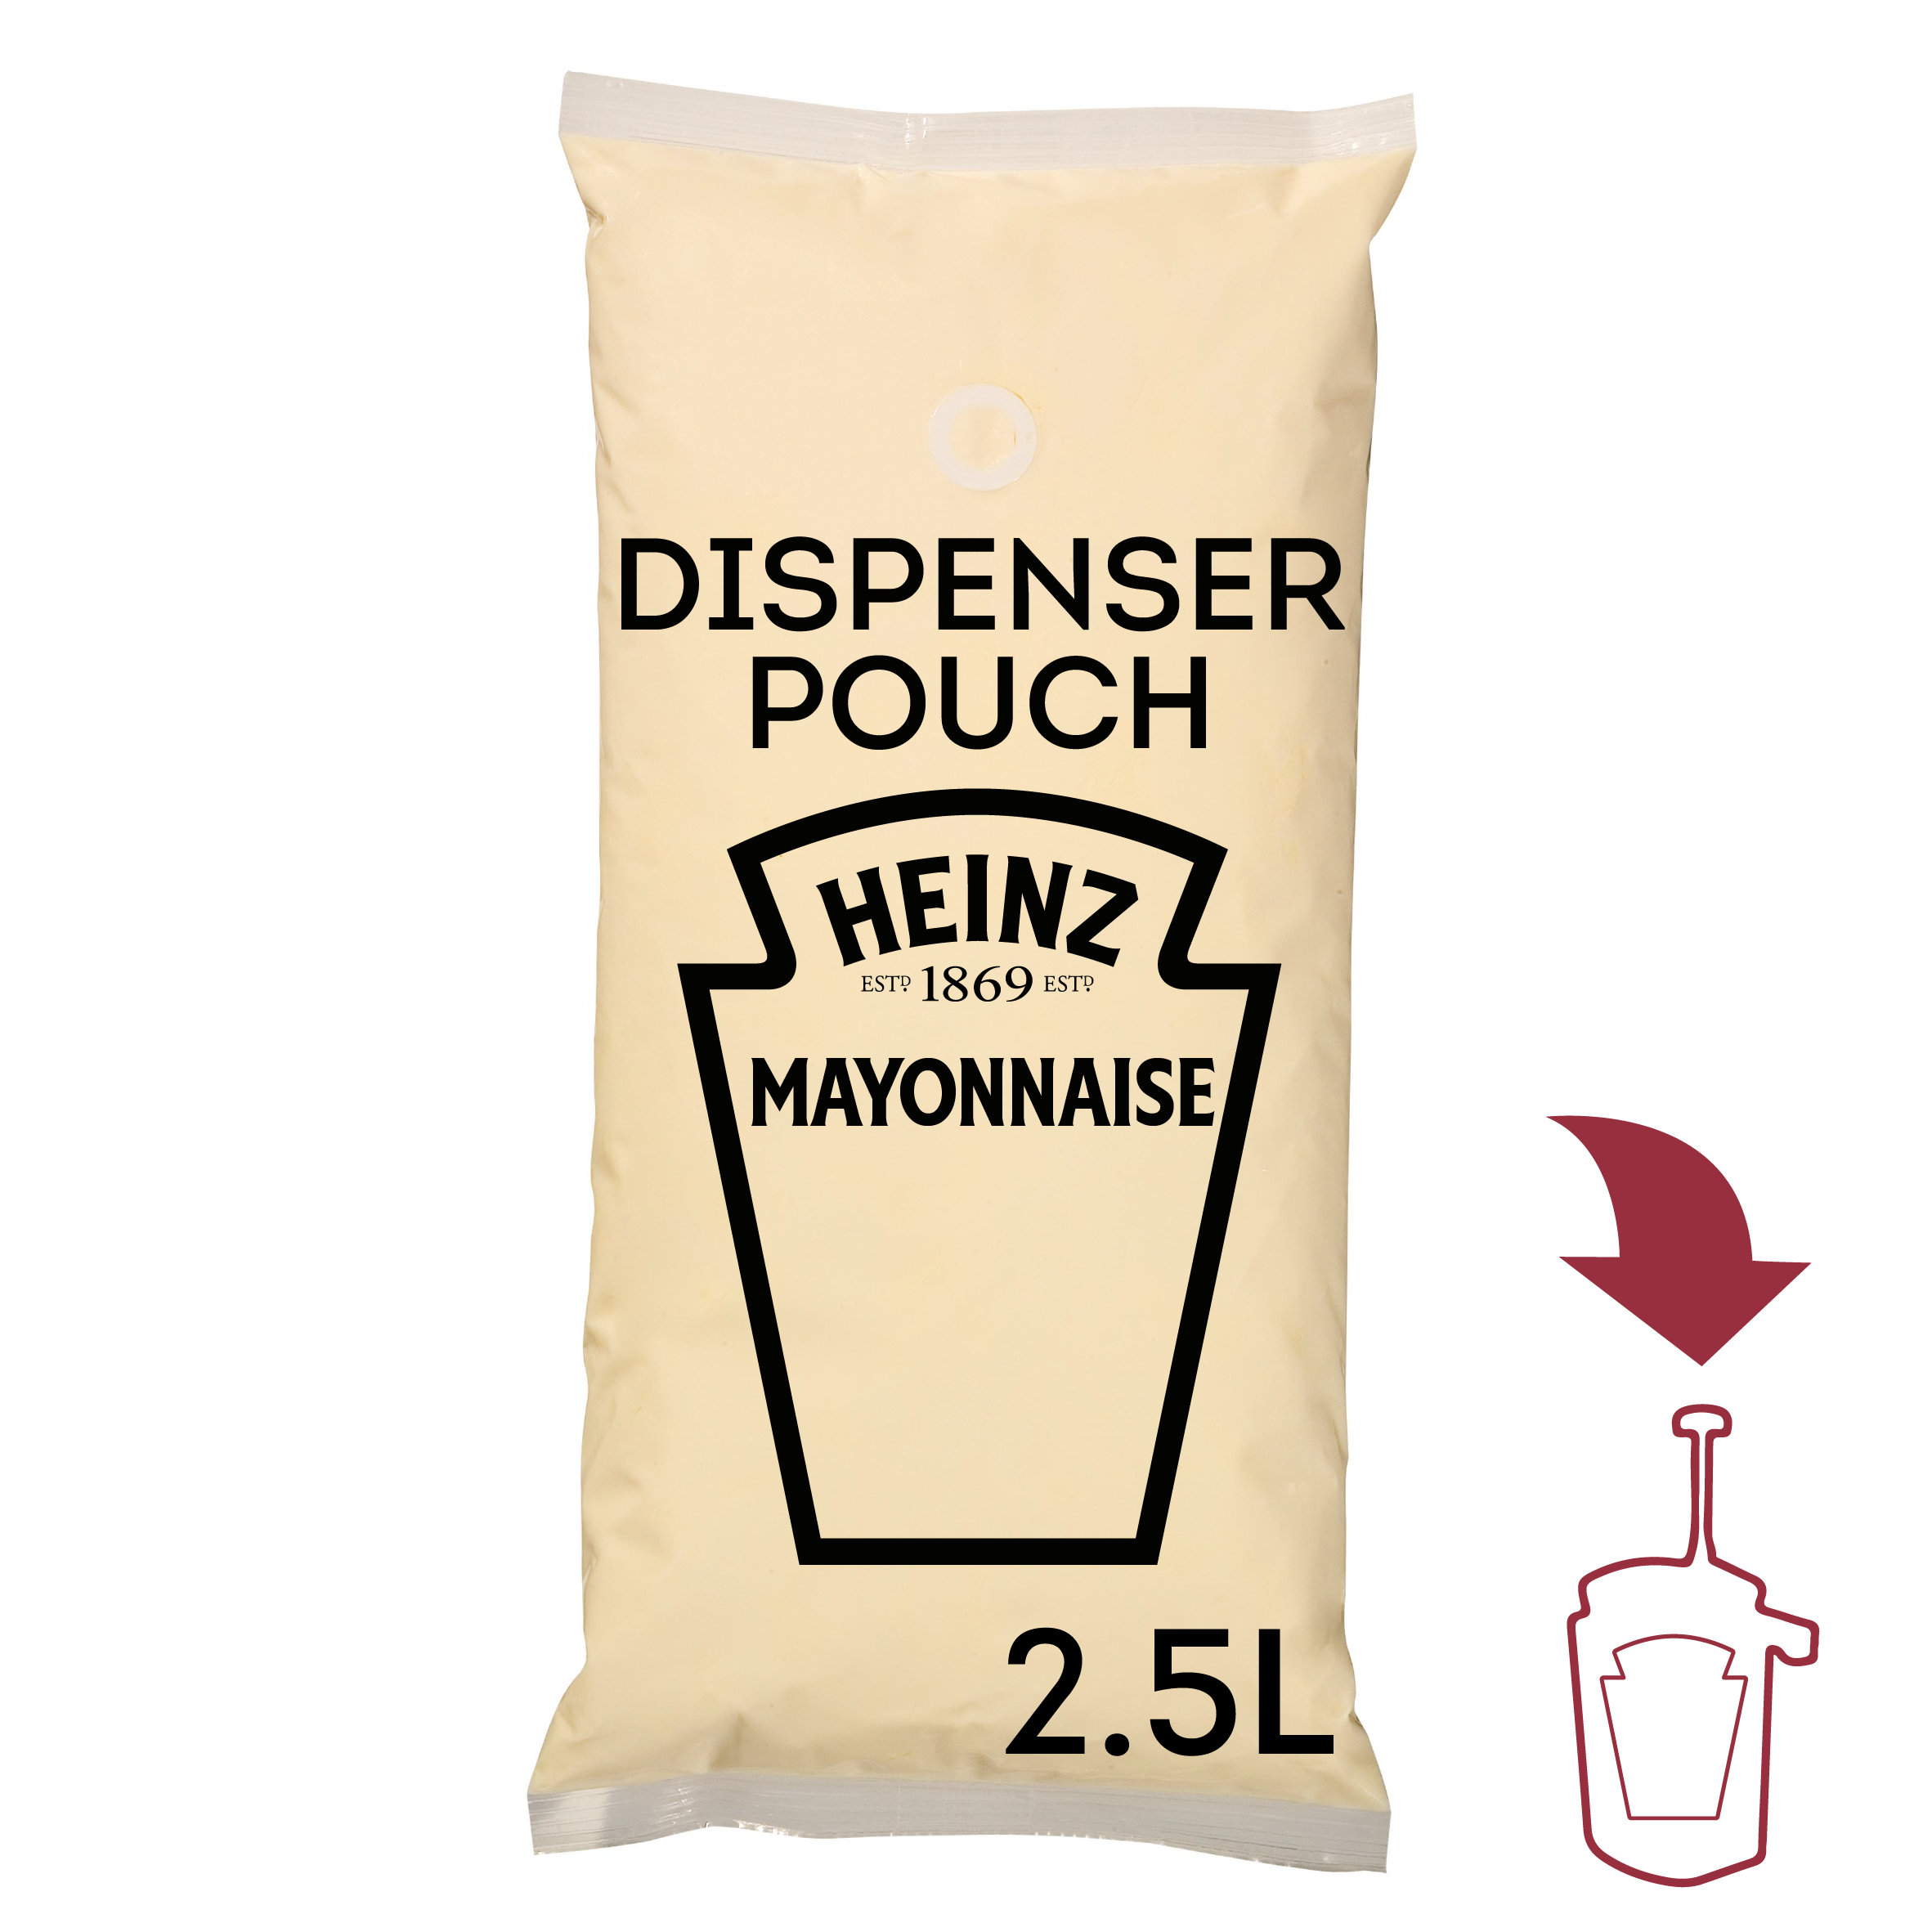 Heinz Mayonnaise 2.5L Dispenser pouch image